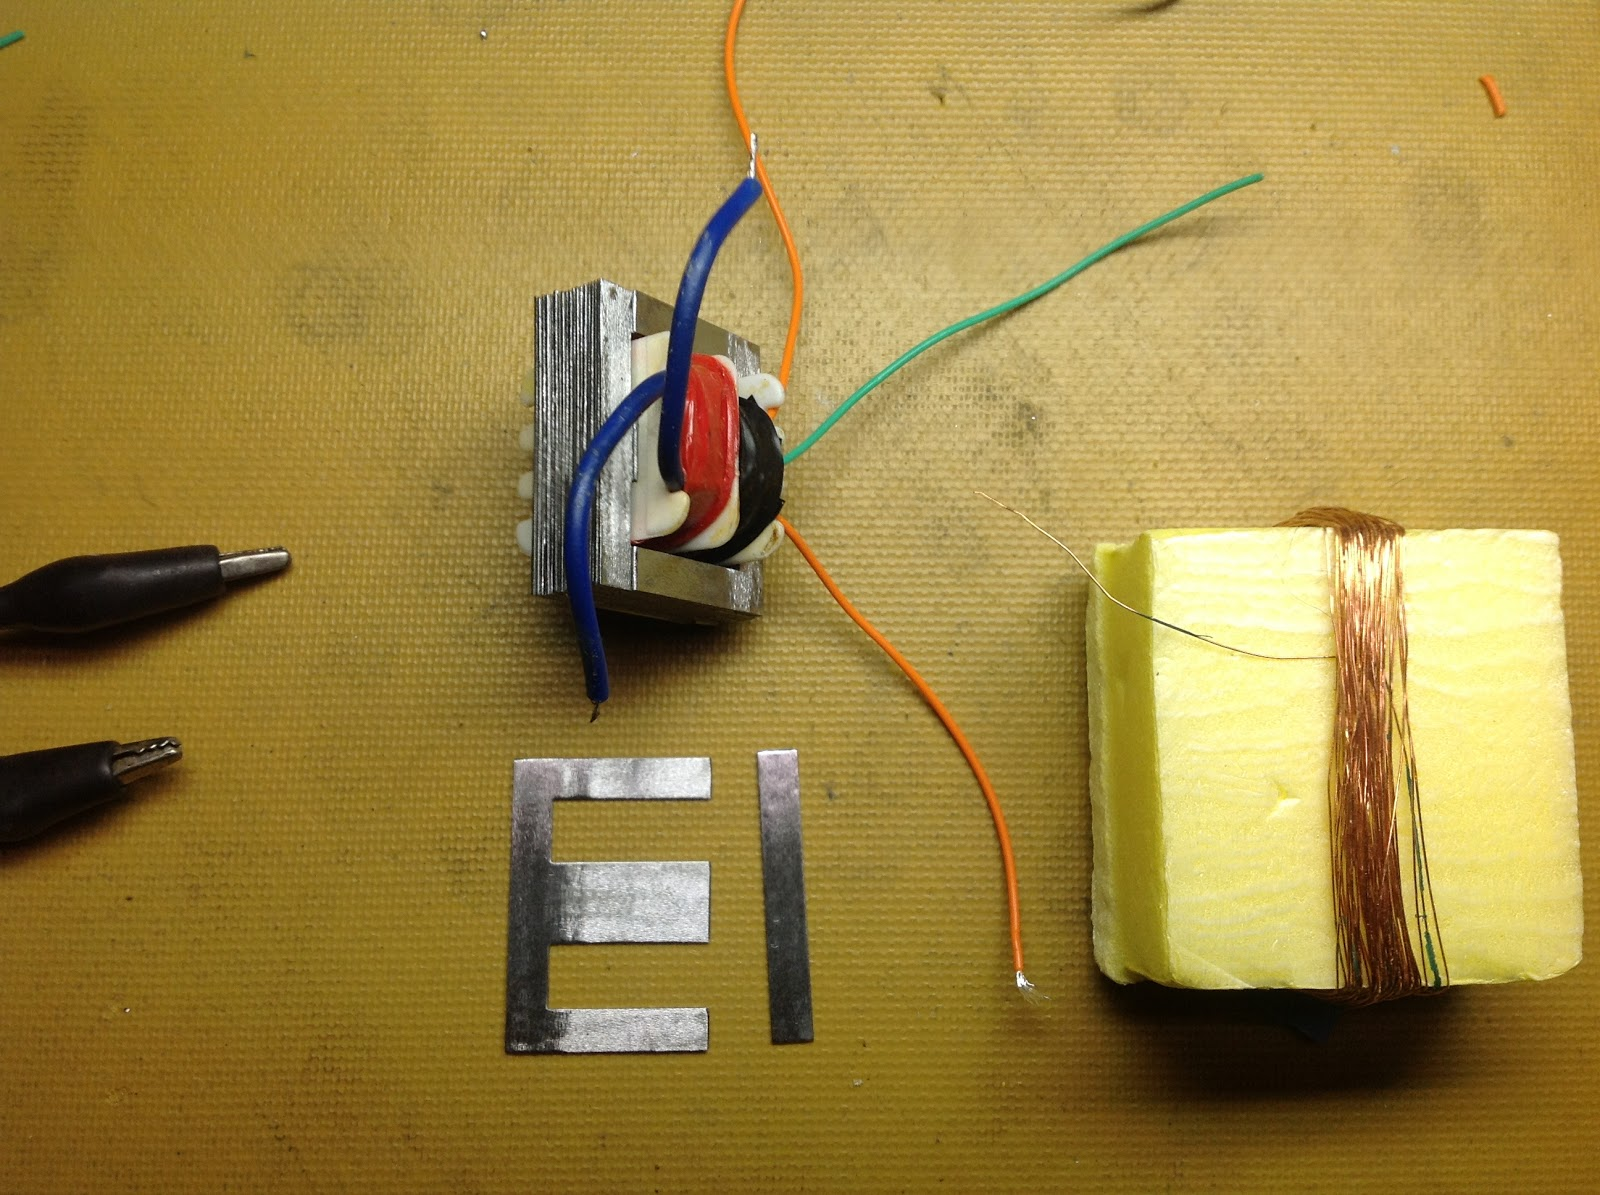 Hooked on Arduino & Raspberry Pi: Hacking a small AC power transformer